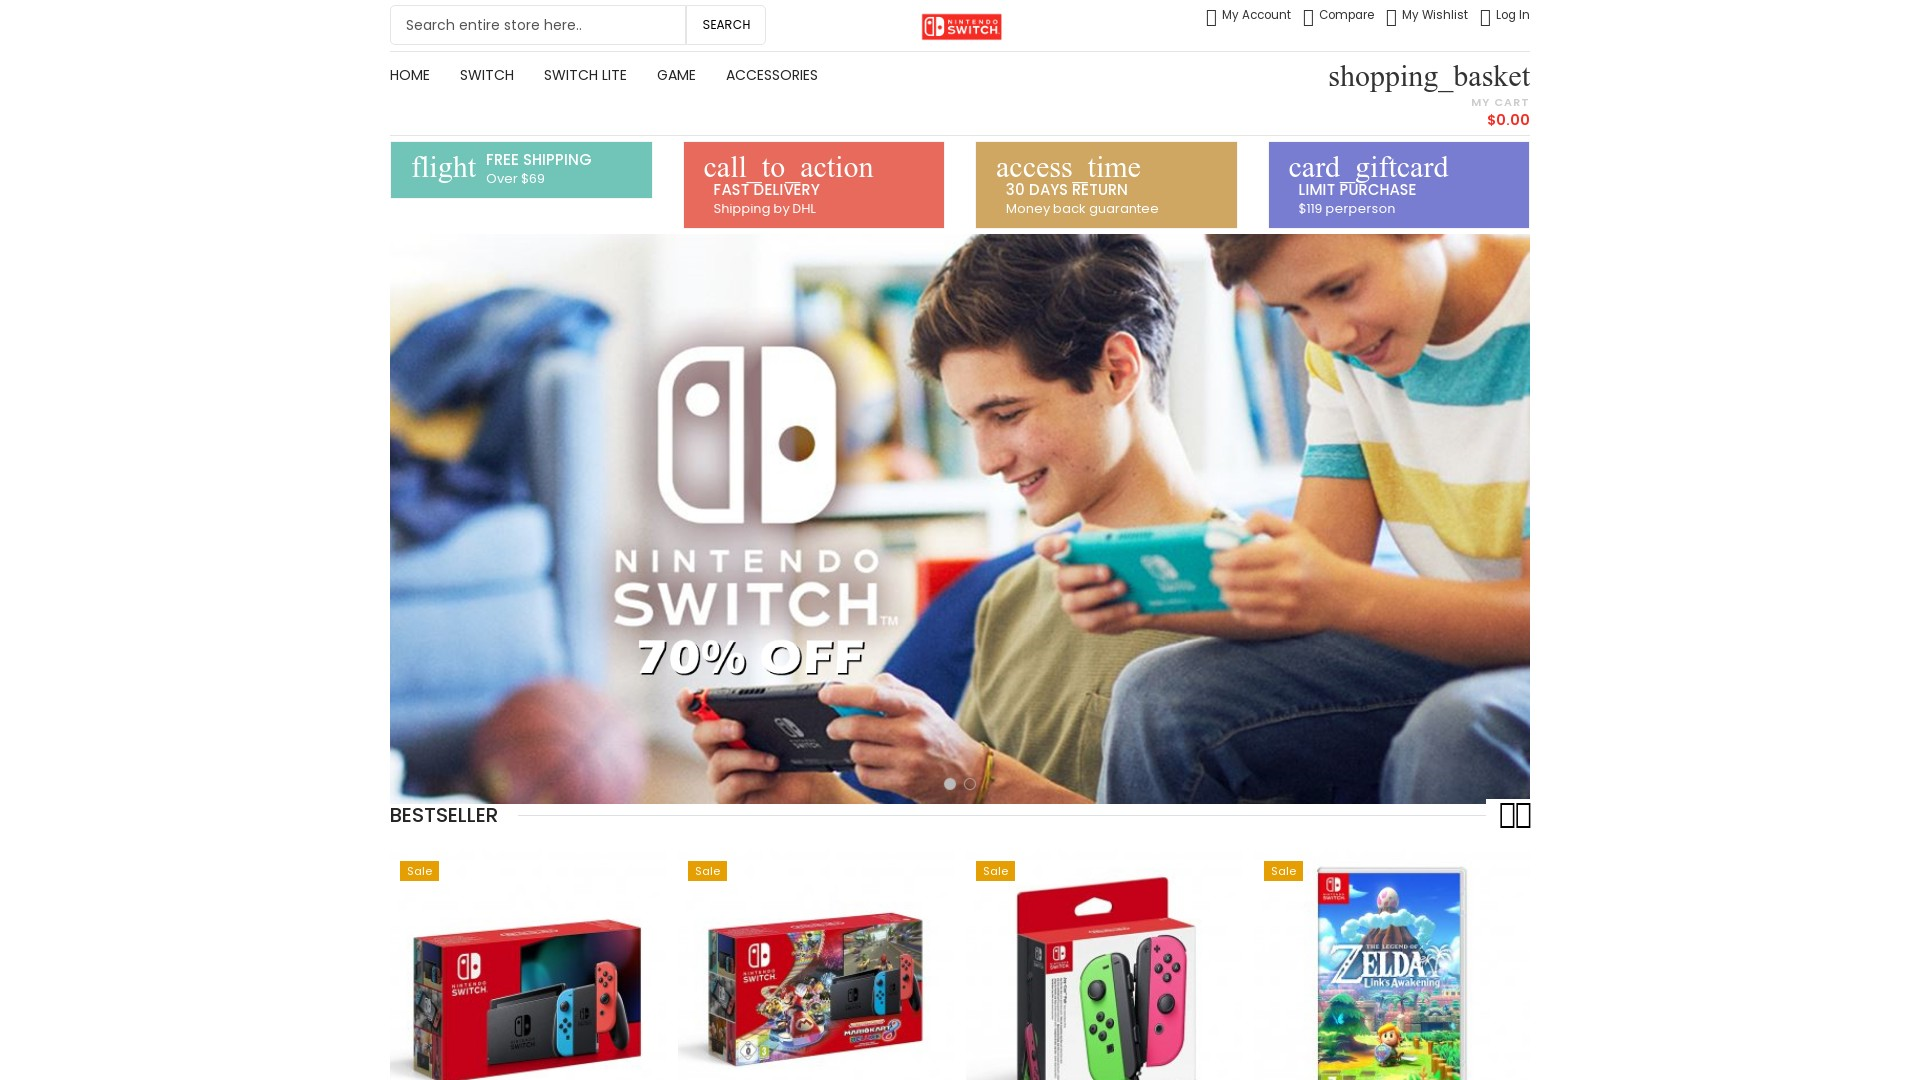 Nintendo Switch Store at nintendoswitchstore.cc - na.nintendoswitchstore.cc